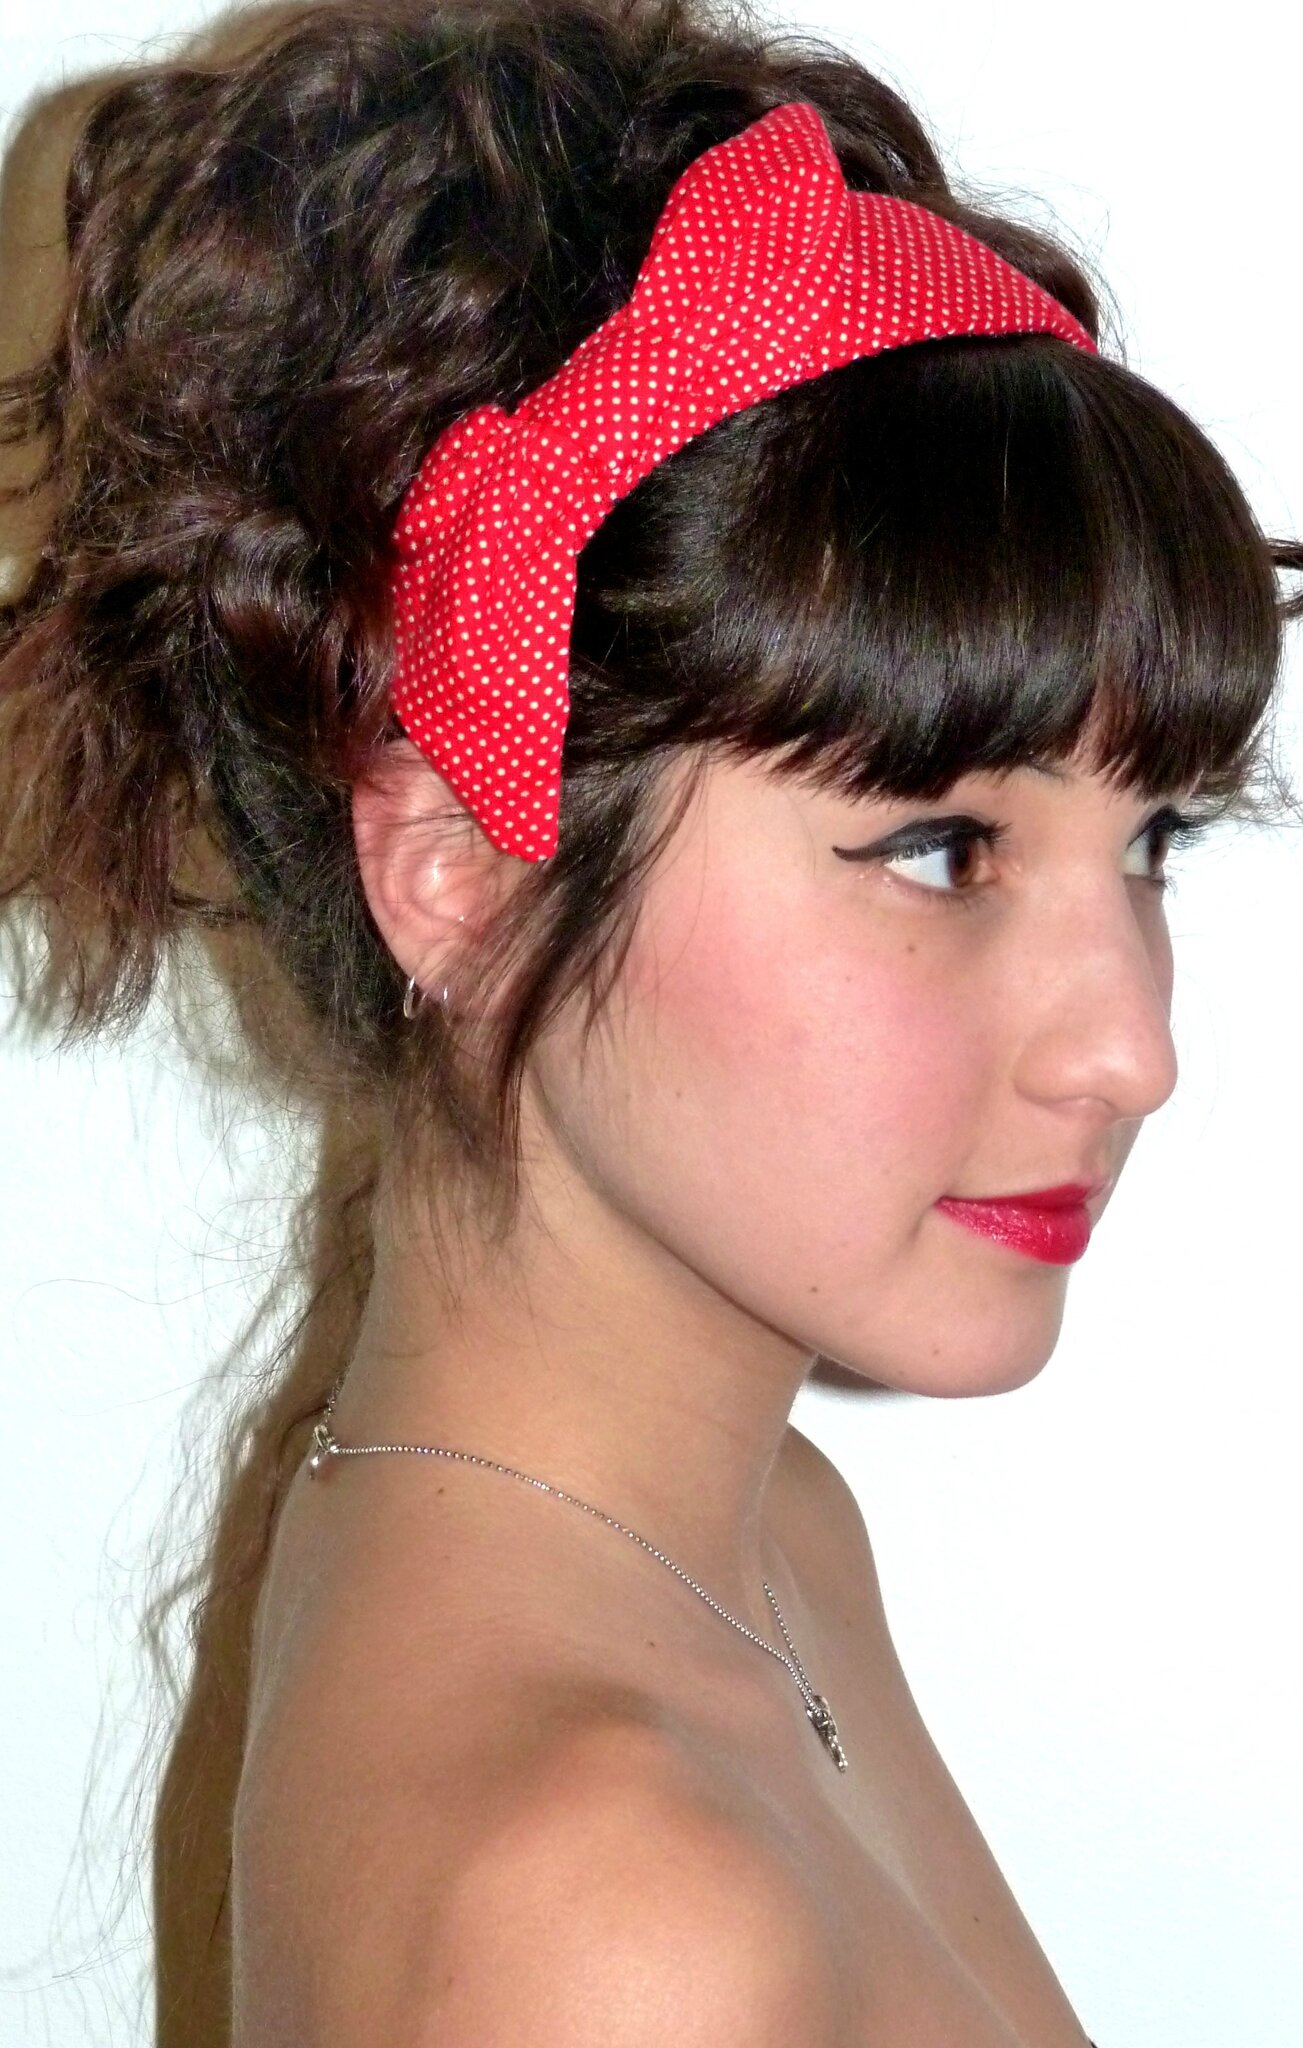 foulard pin up cheveux finest coiffure avec un bandana cheveux u coiffures cool et tutoriels. Black Bedroom Furniture Sets. Home Design Ideas